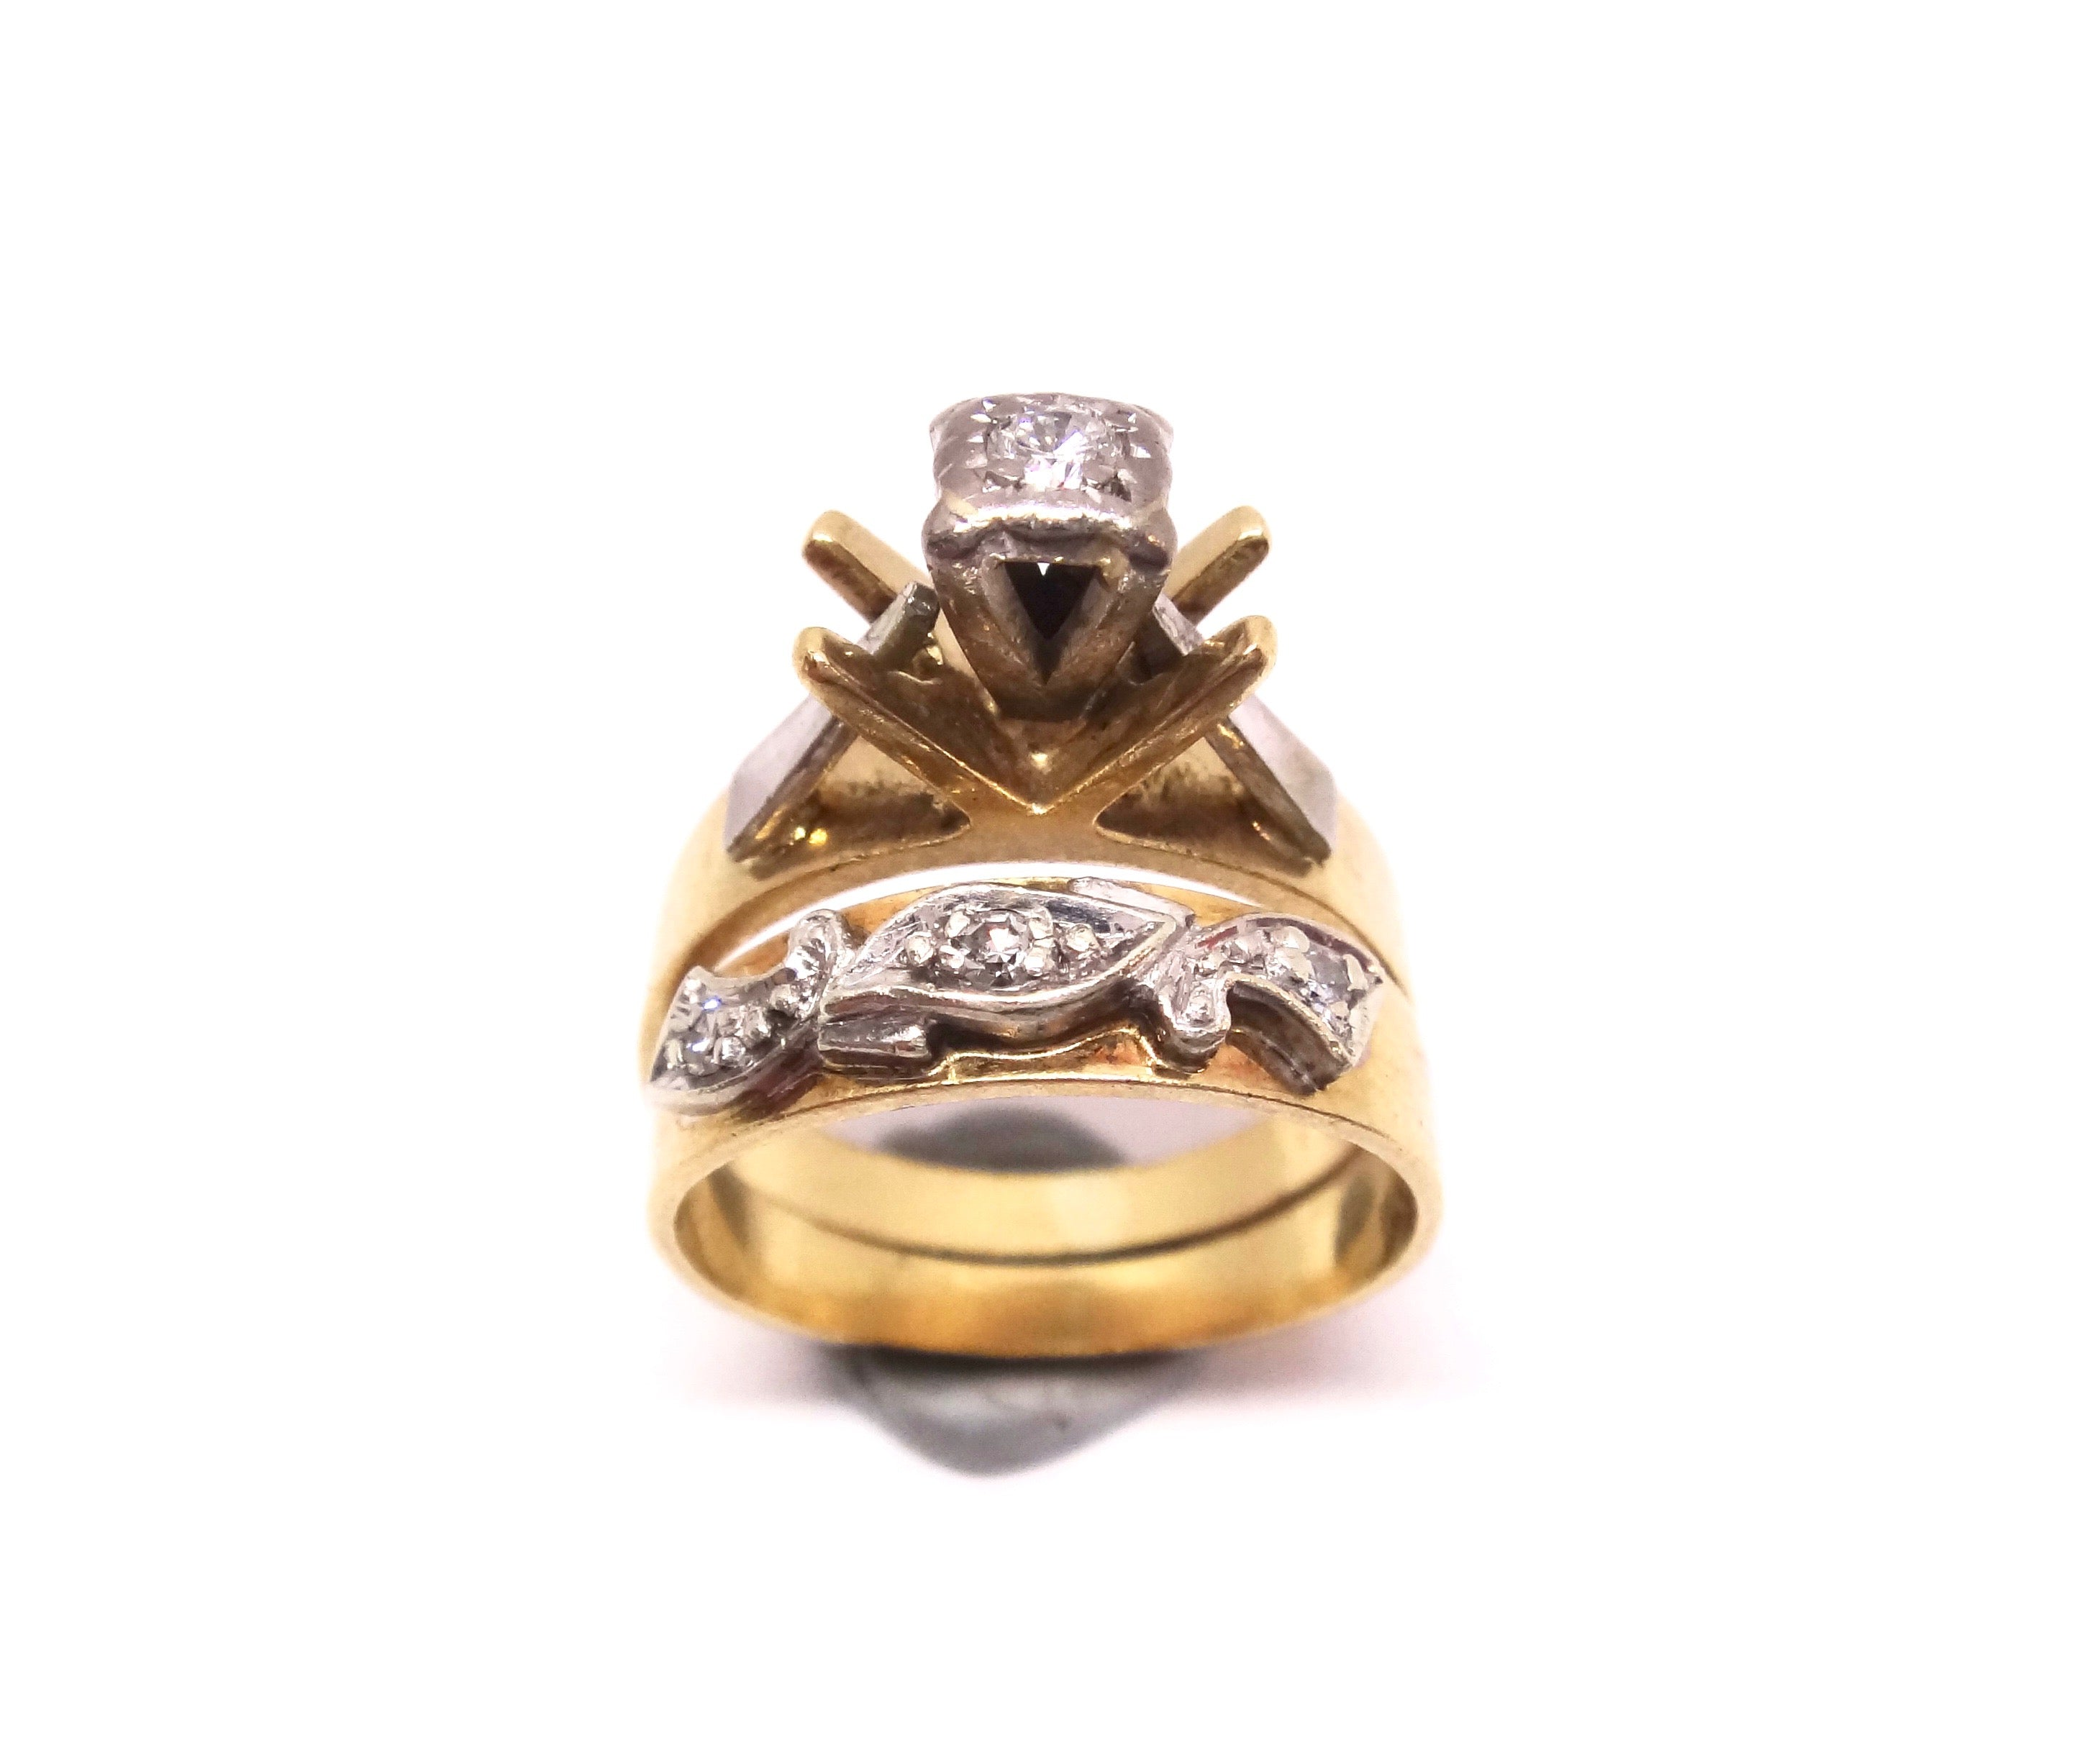 Vintage 18CT Yellow GOLD & DIAMOND Wedding/Engagement Ring Set